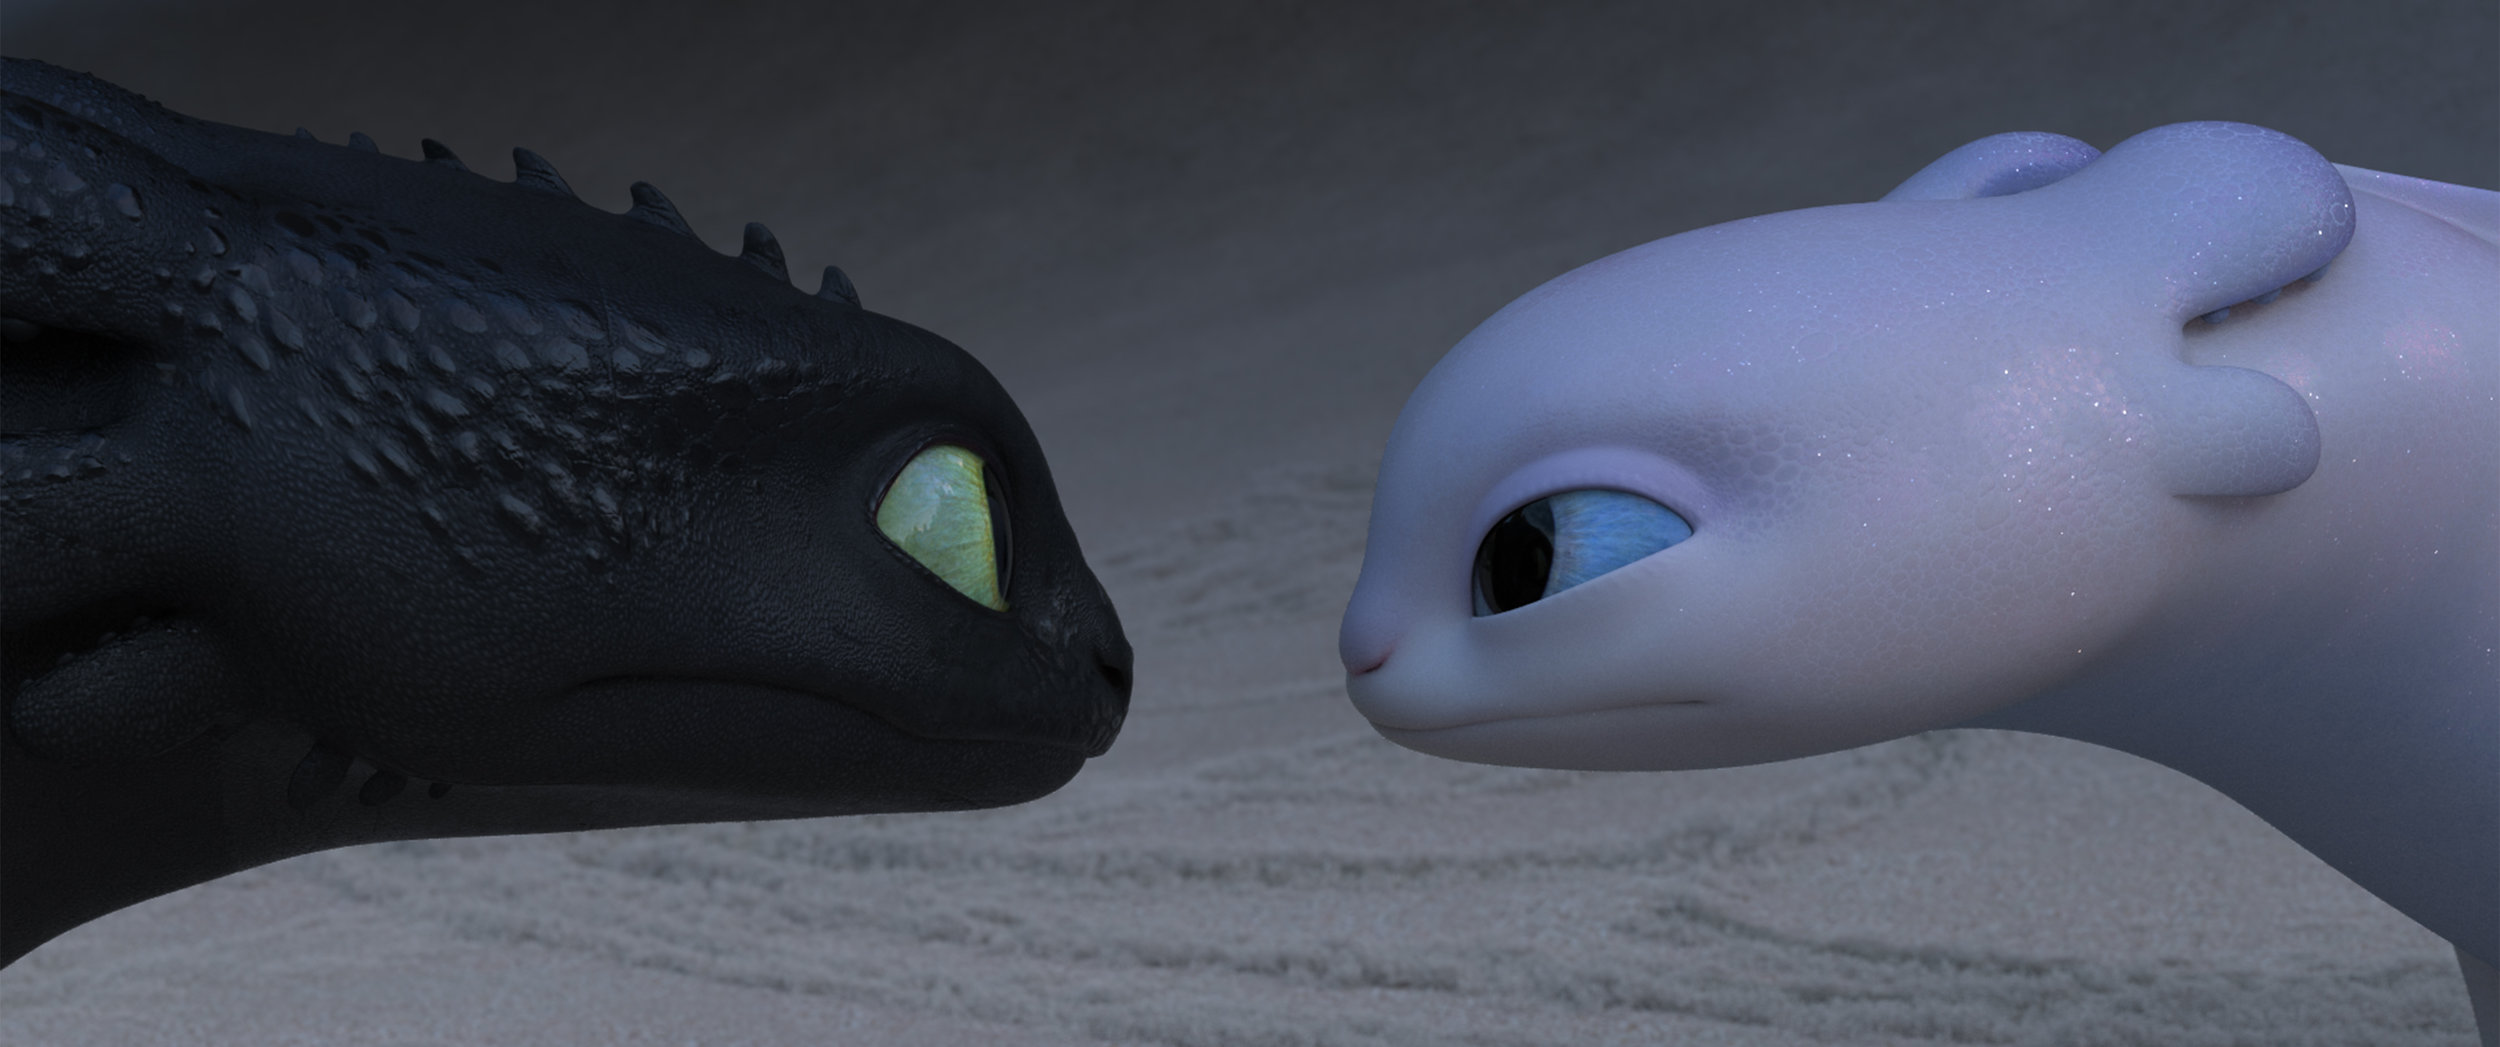 """The """"night fury"""" dragon Toothless, left, meets a female dragon, a """"light fury,"""" in the animated """"How to Train Your Dragon: The Hidden World."""" (Photo courtesy DreamWorks / Universal Pictures)"""